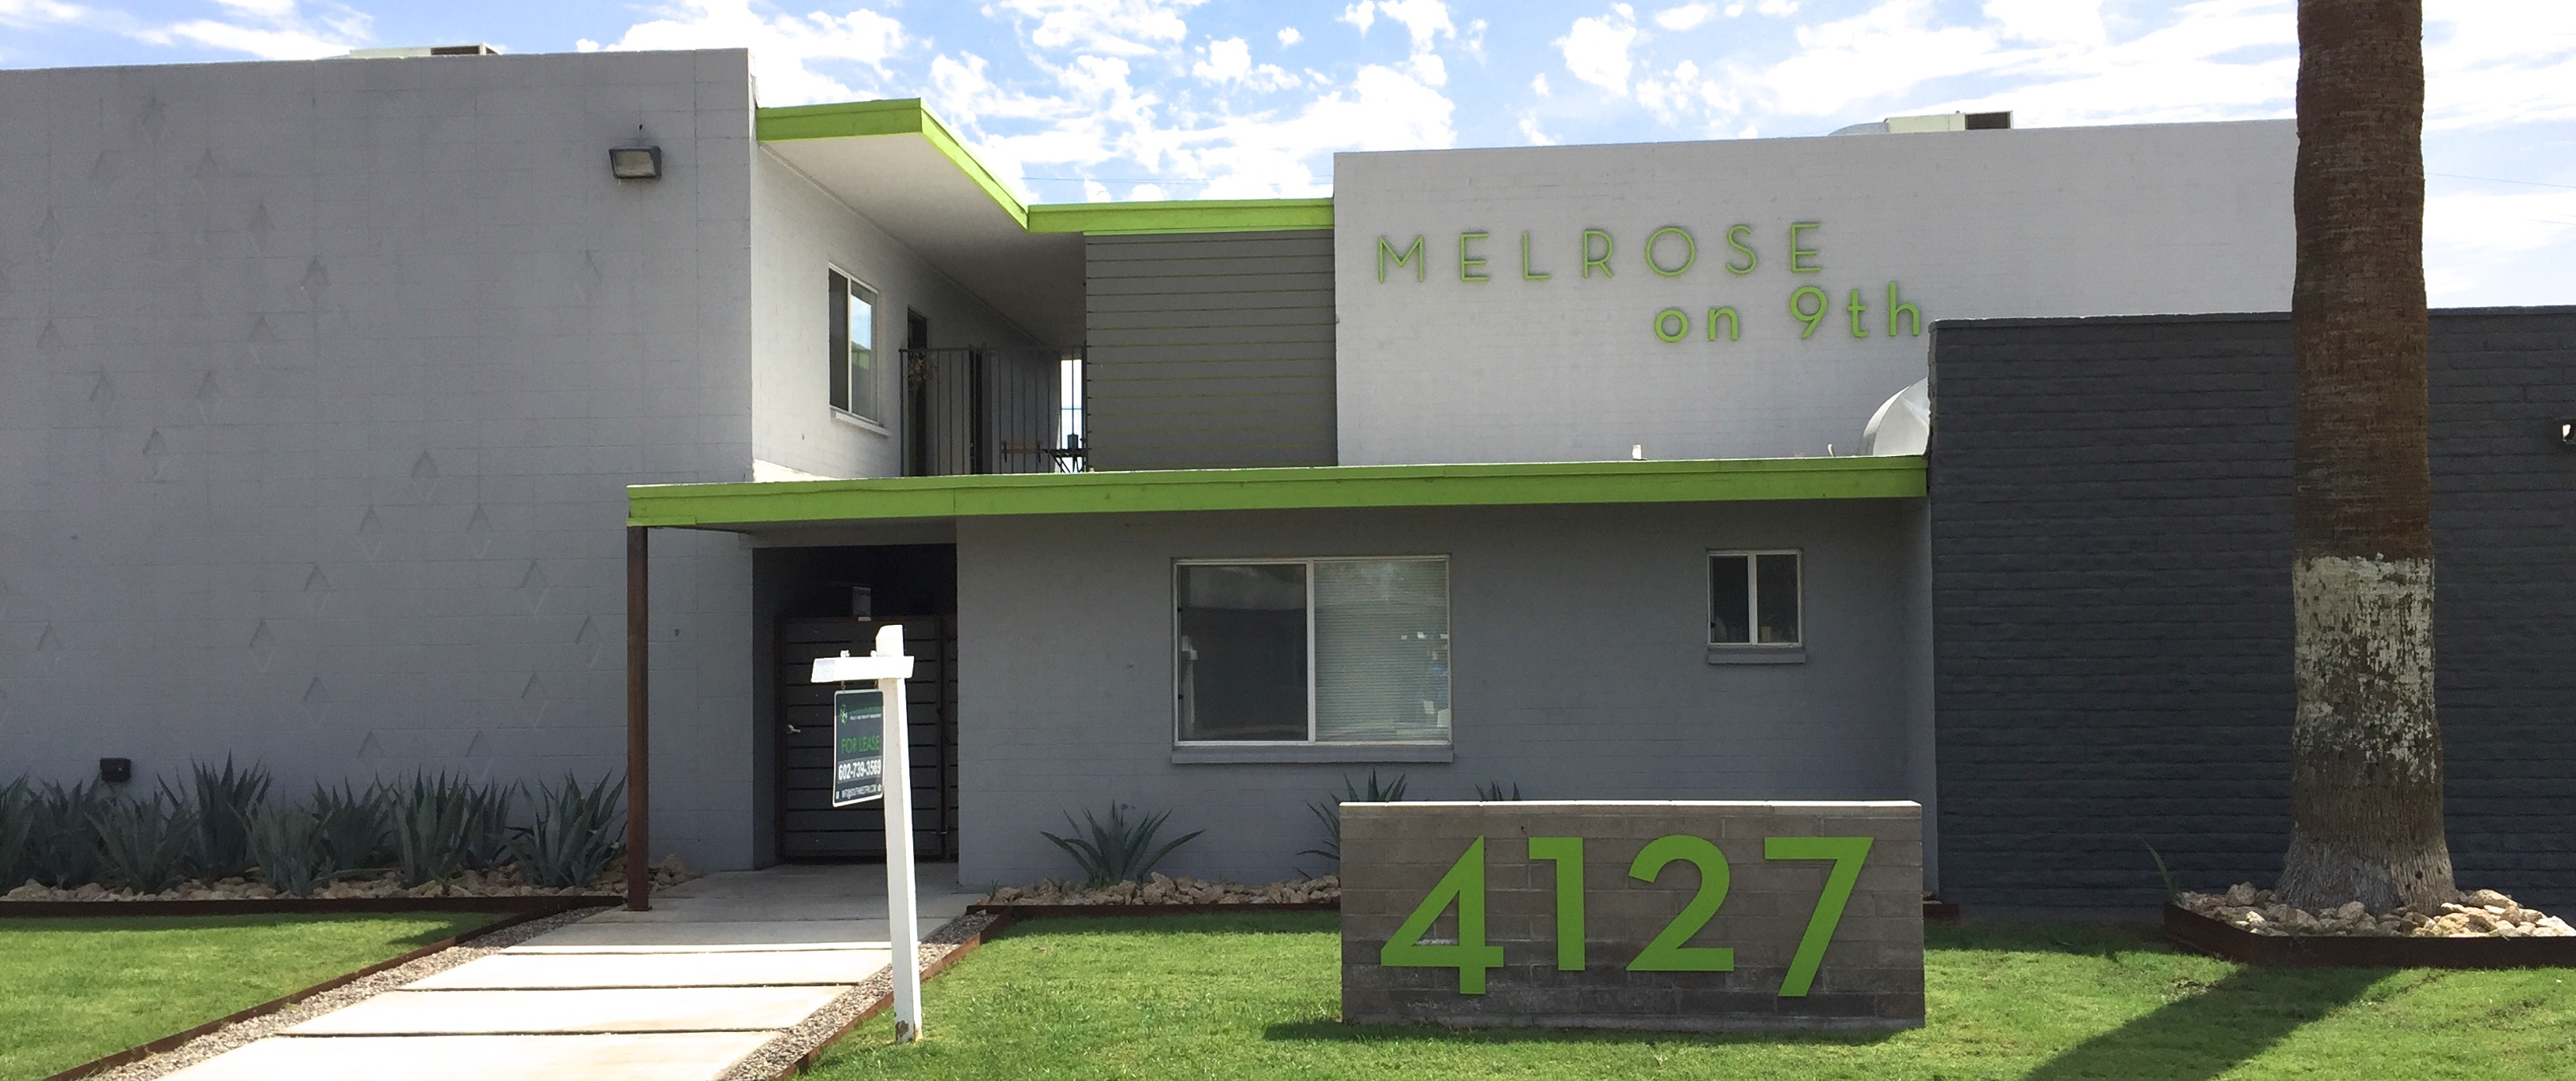 4127 N 9th Avenue | Melrose on 9th | Phoenix Apartments For Rent